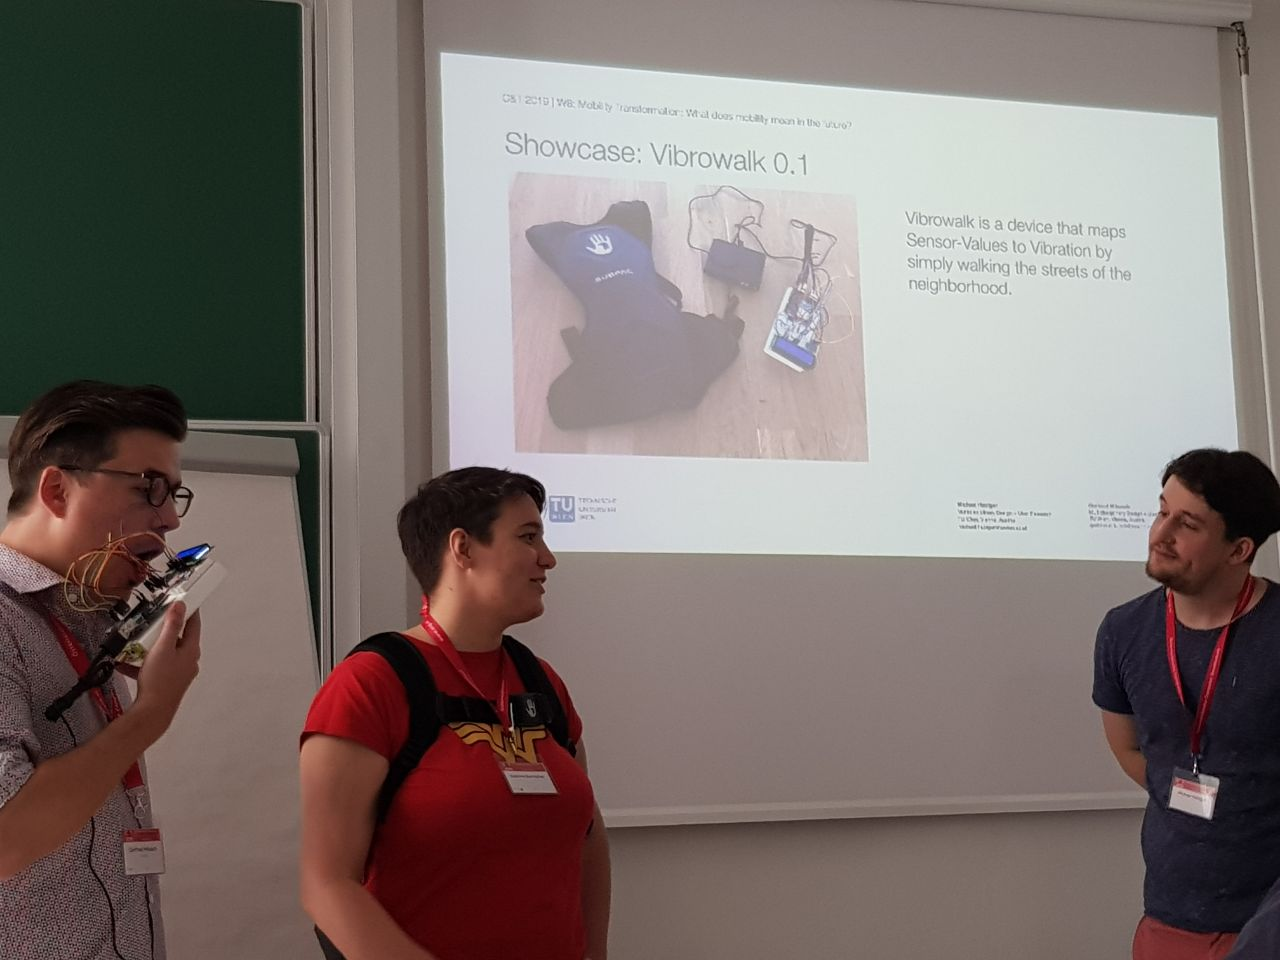 Showcasing vibrowalk, it is a device that maps sensor values to vibration by simple walking the streets of the neighbourhood.